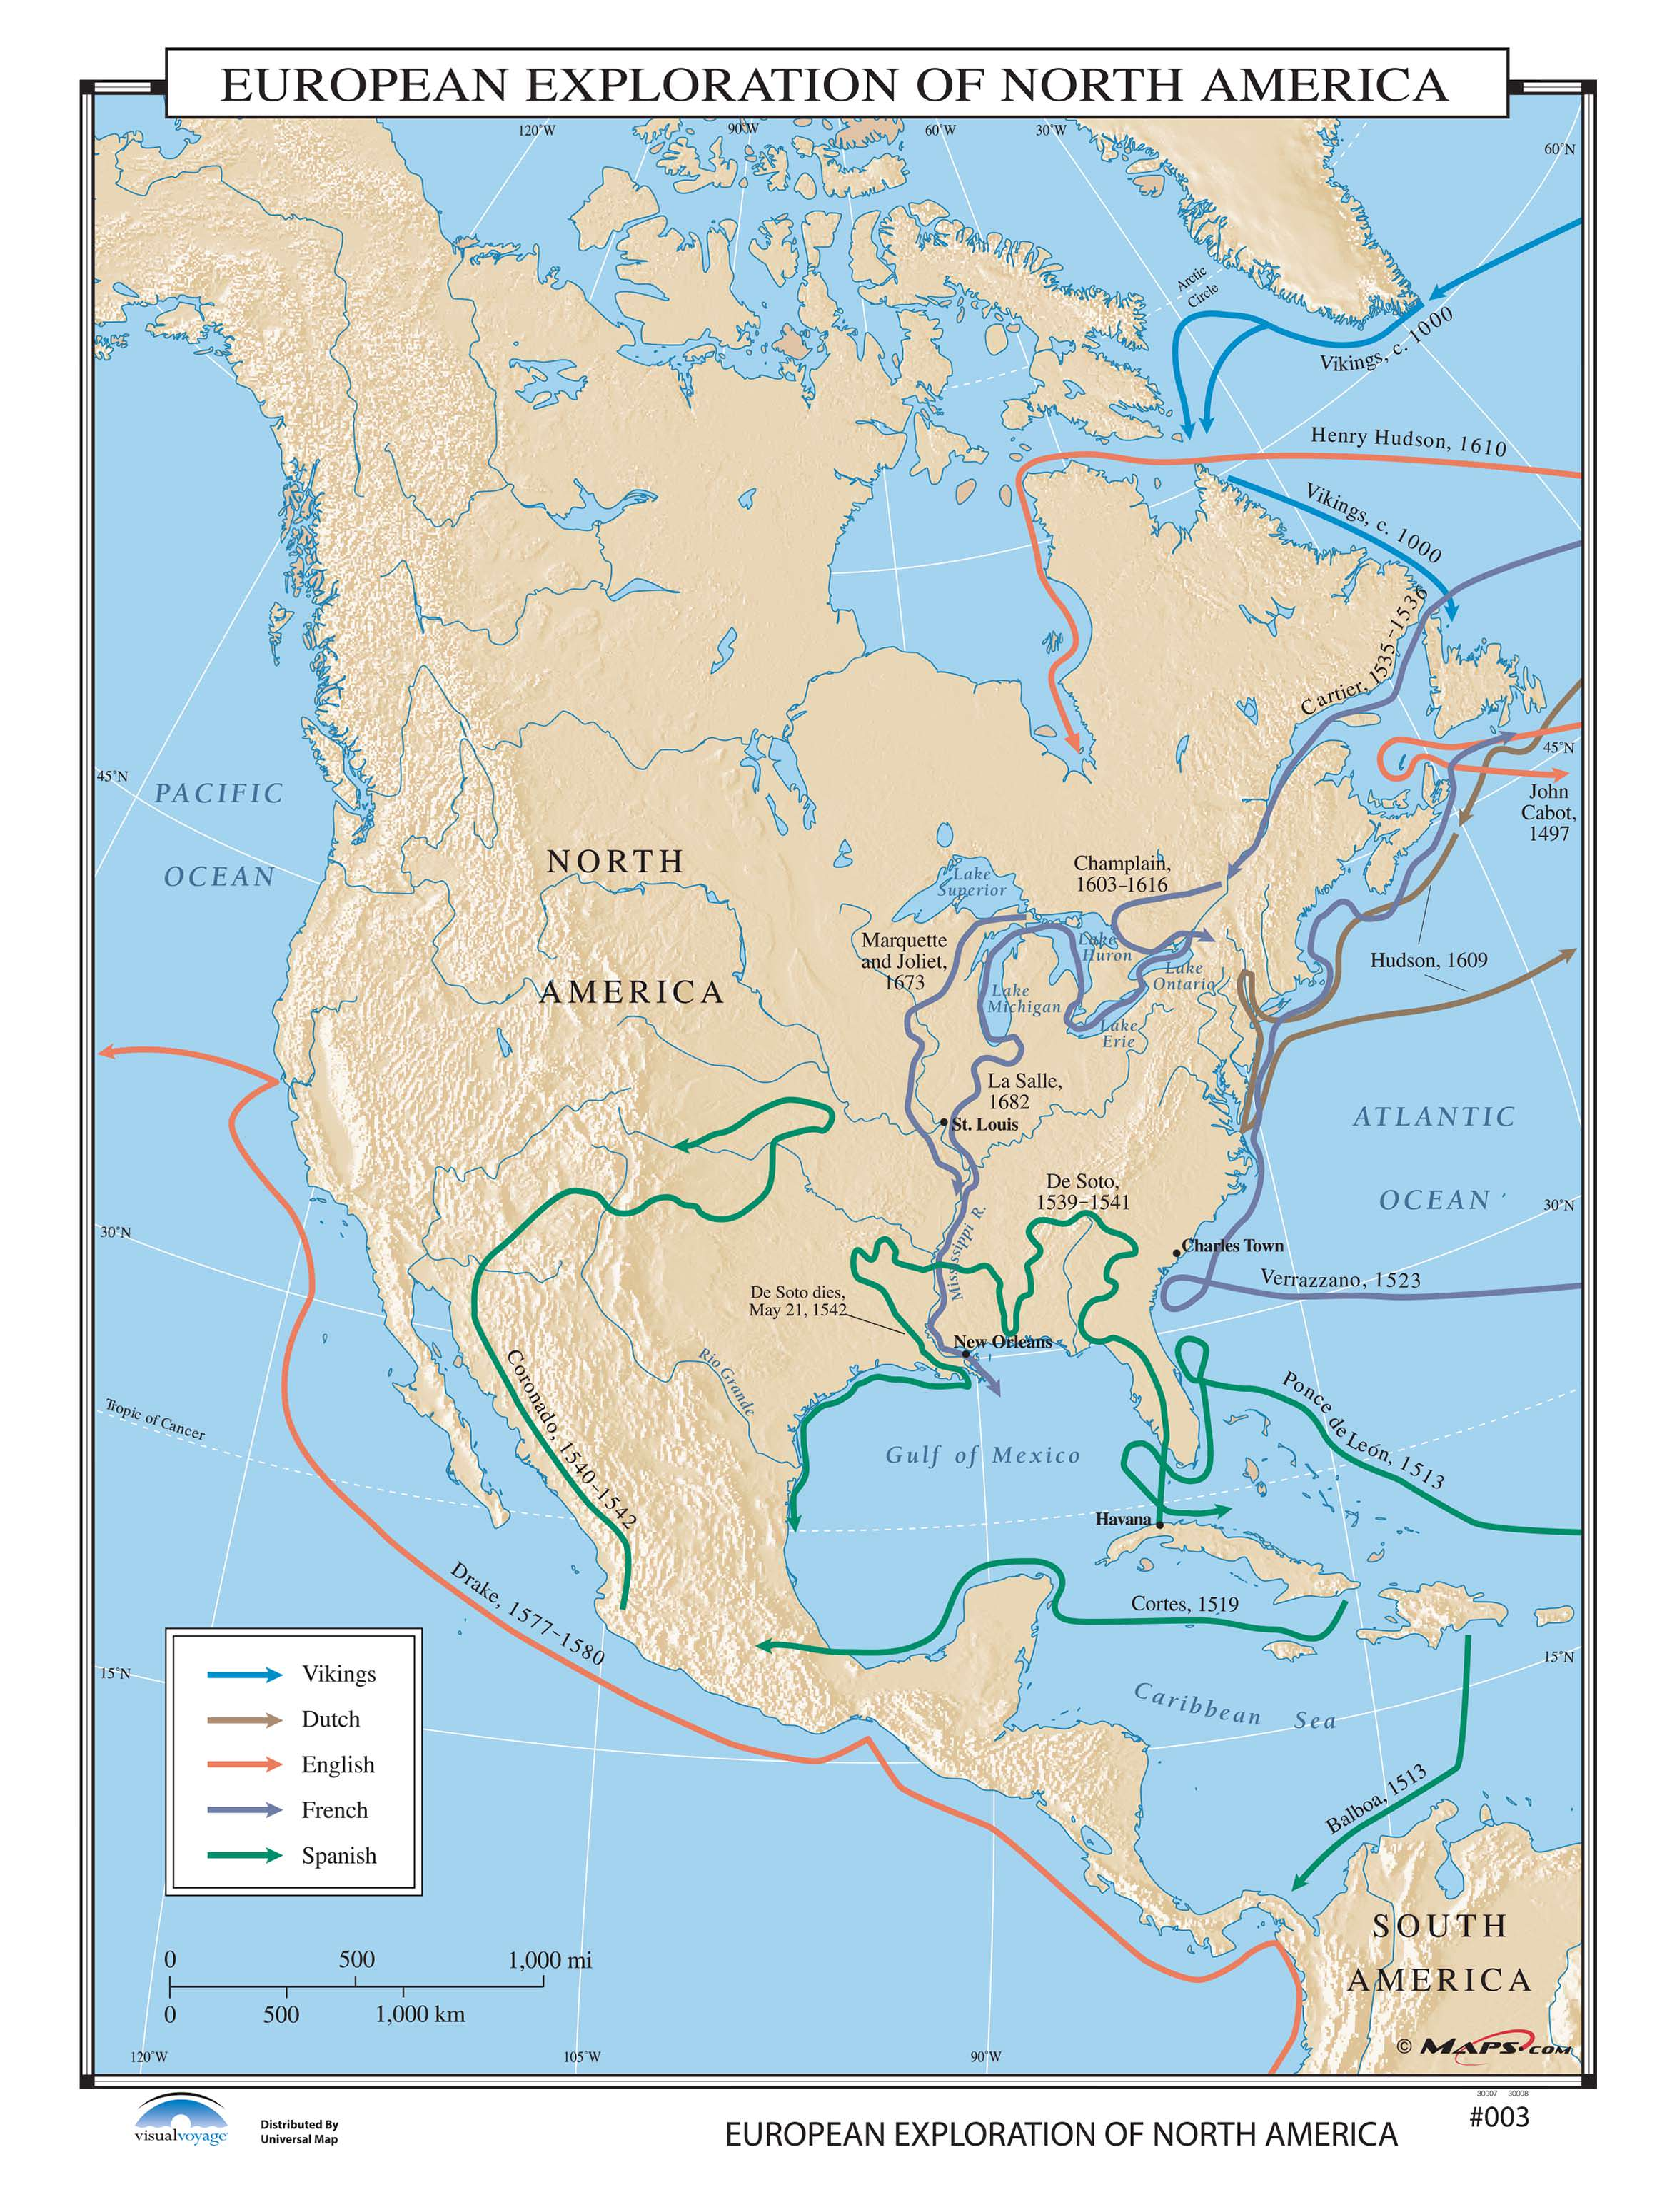 003 European Exploration Of North America On Roller W